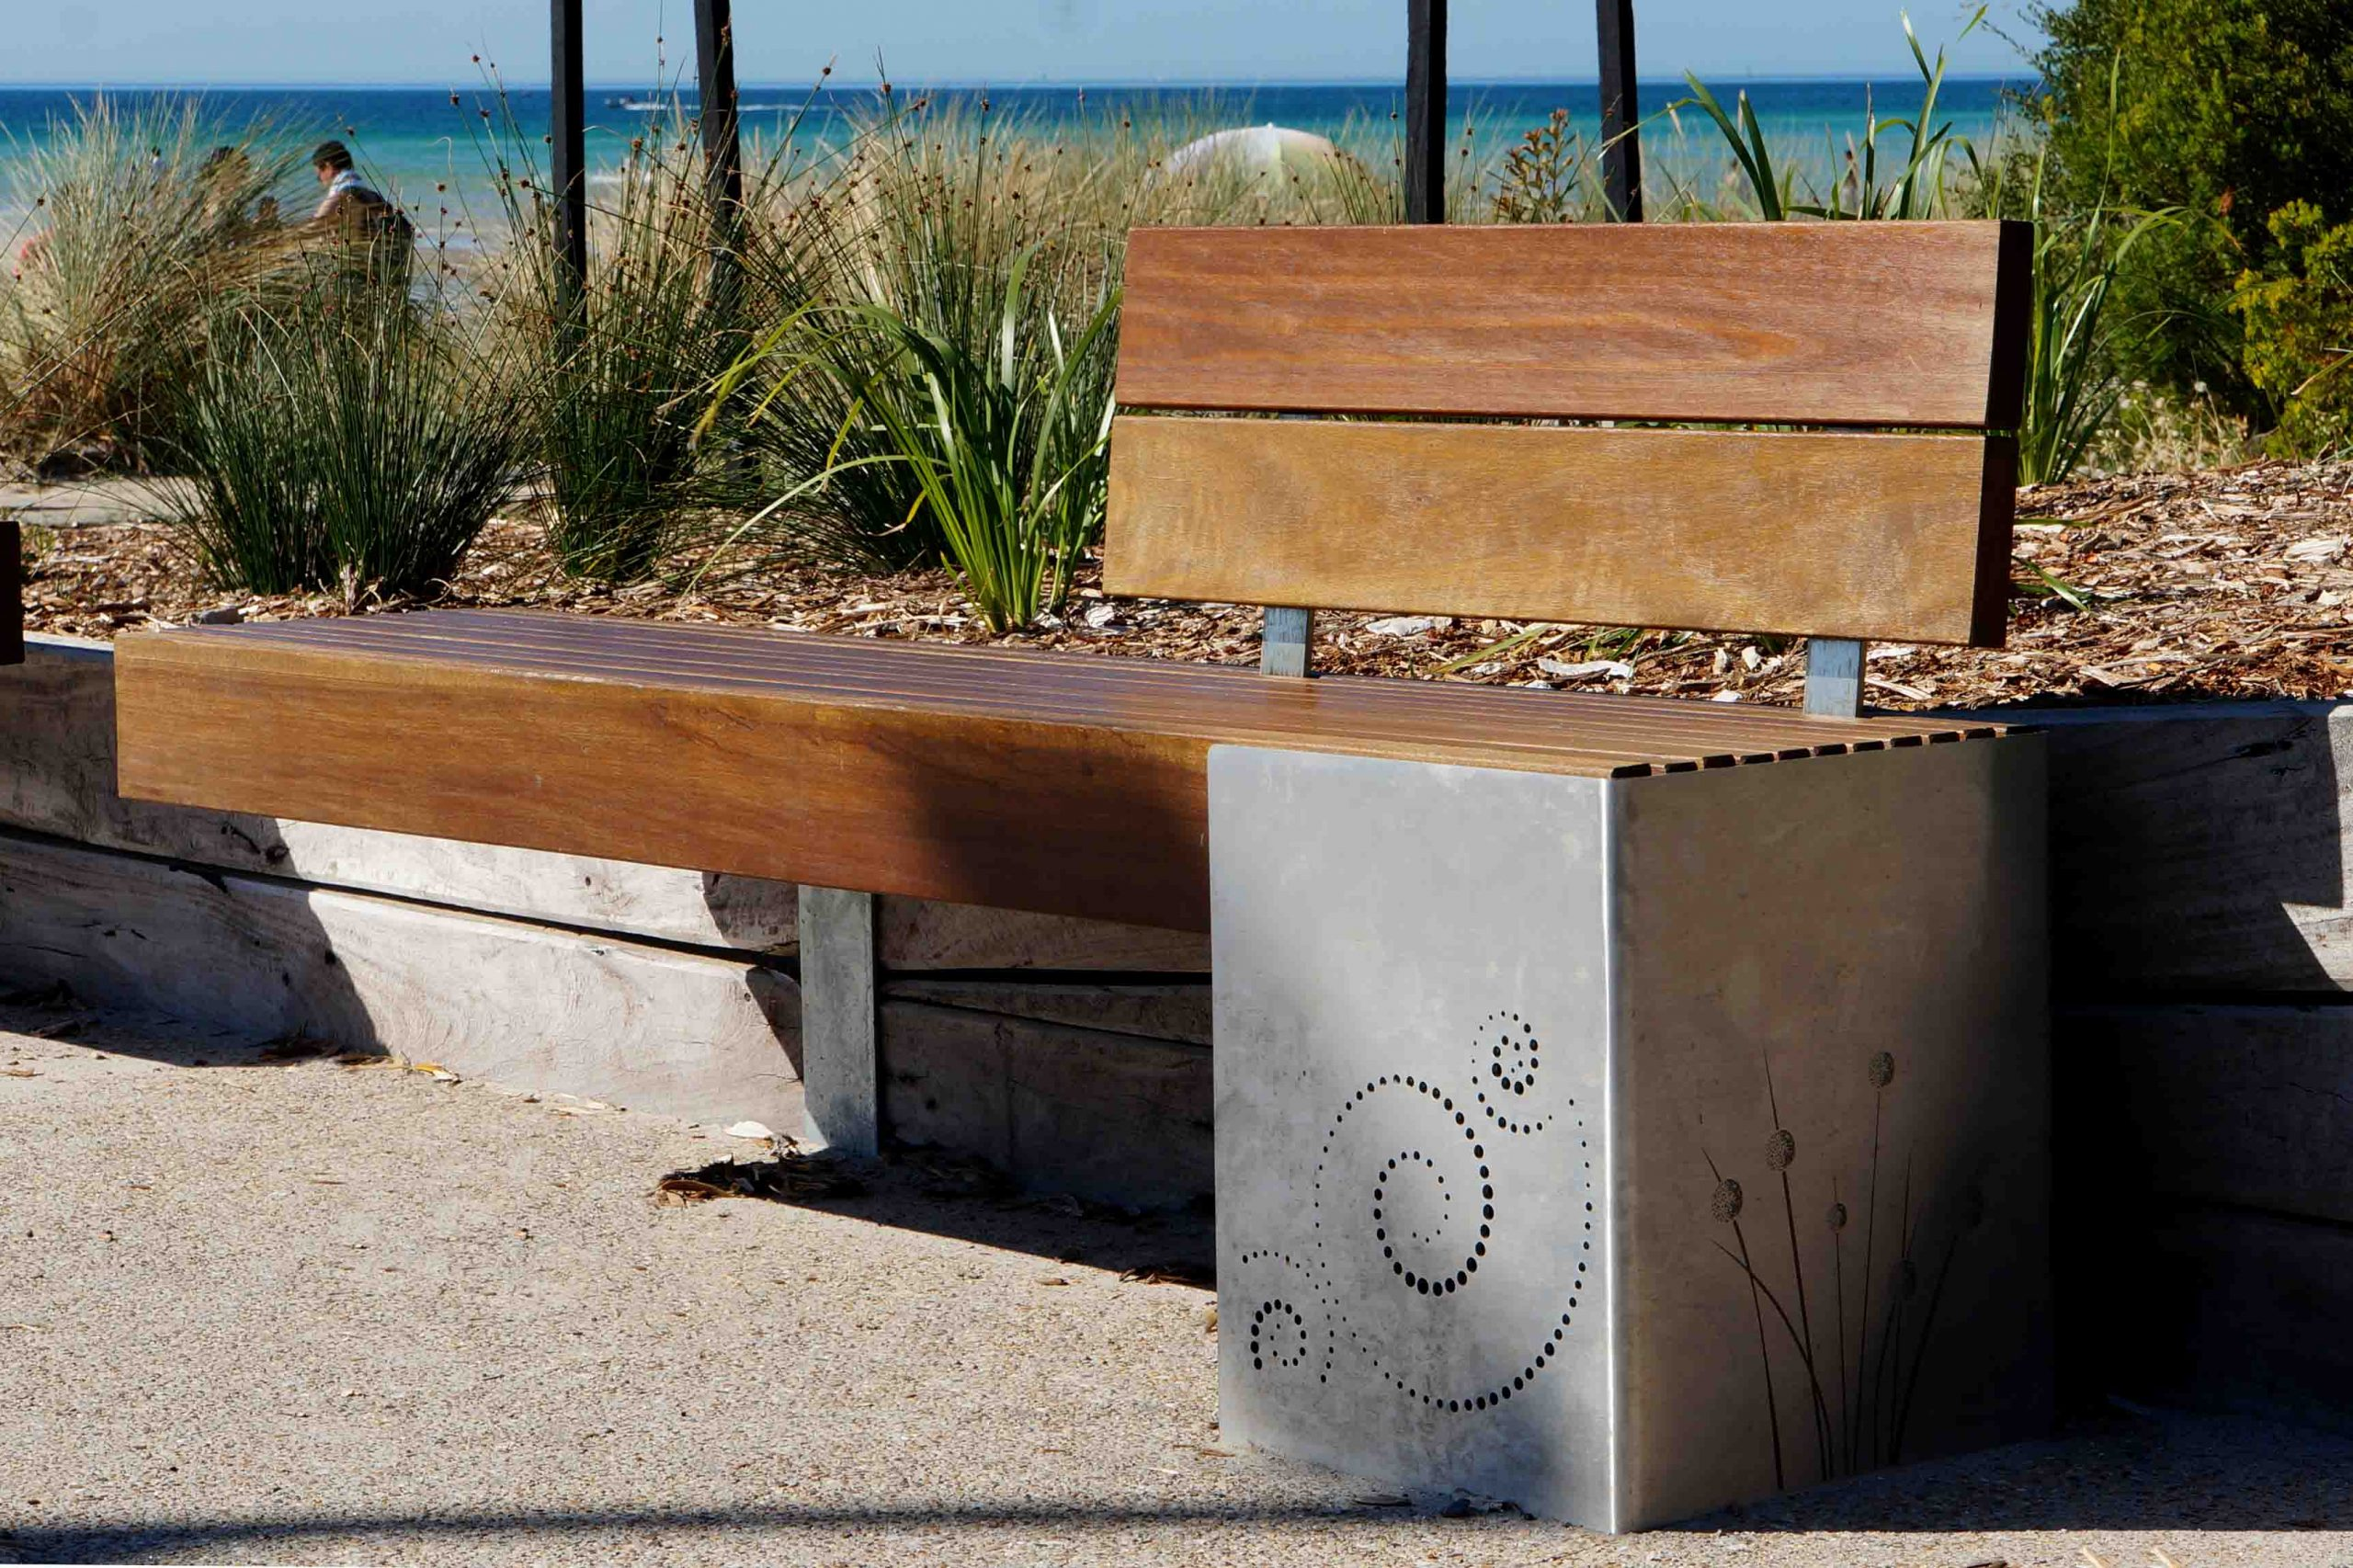 A wooden bench outdoors